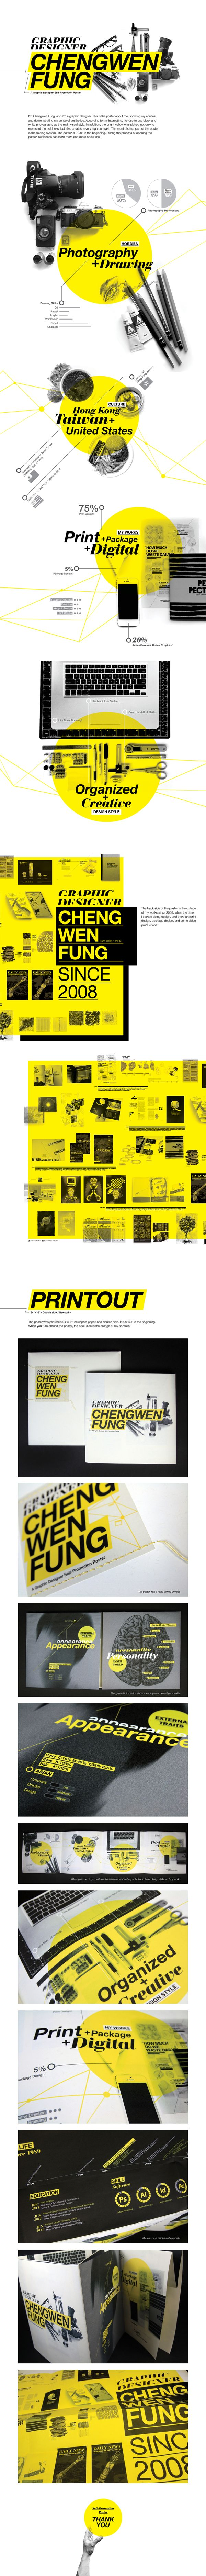 Poster design site - Self Promotion Poster By Chengwen Fung Via Behance Nice Web Type And Branding Drawing Websiteslayout Designdesign